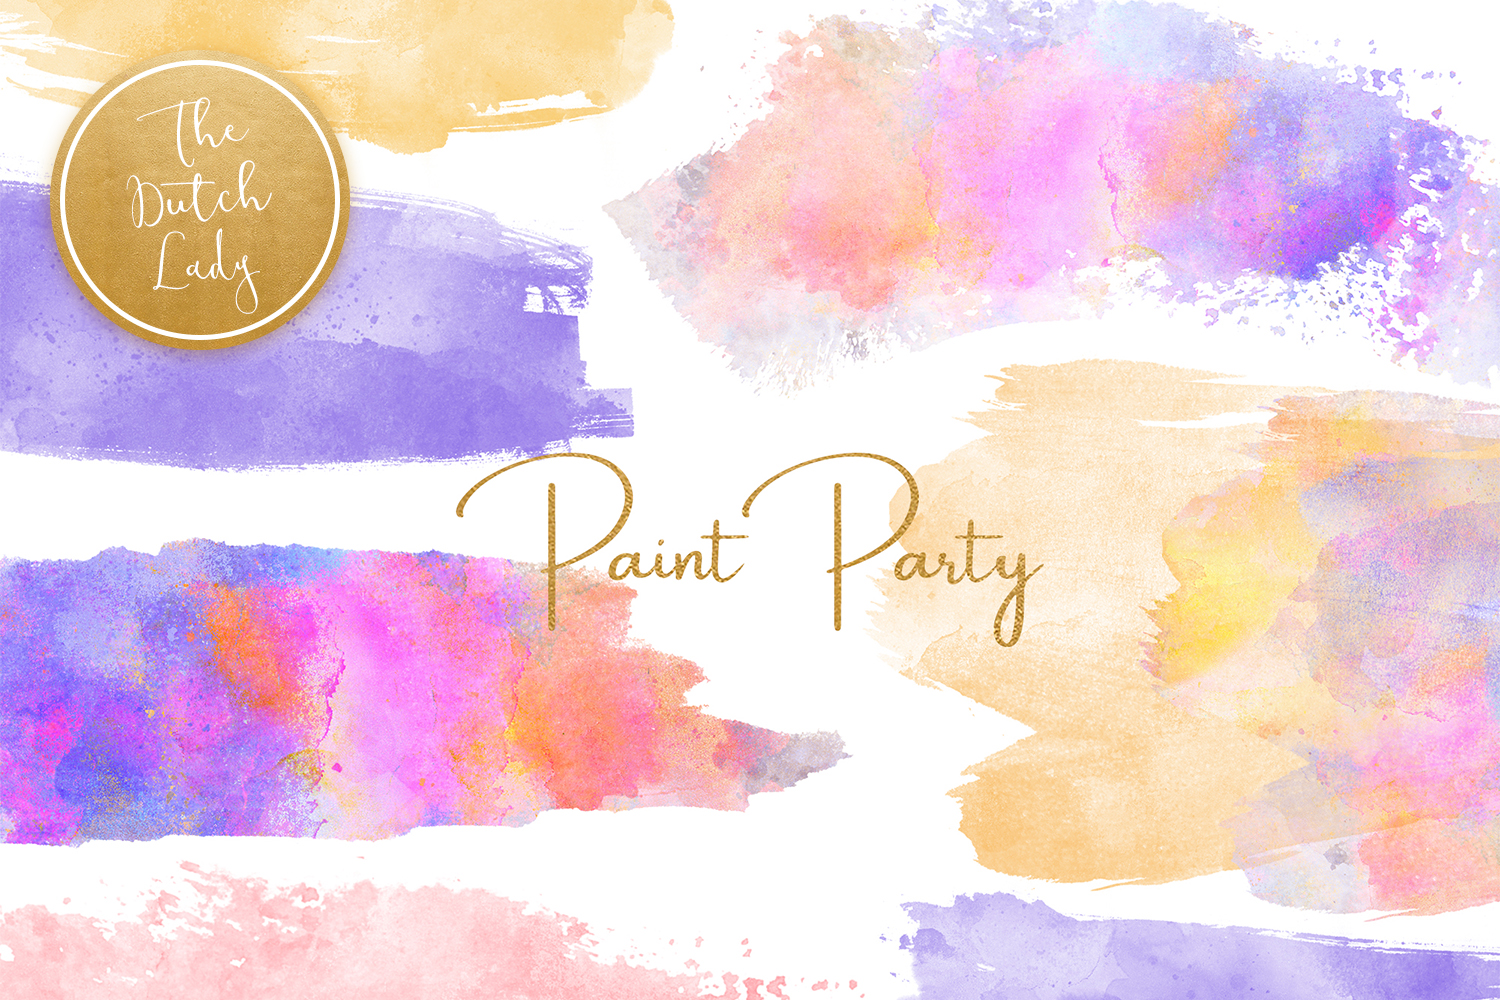 Watercolor party clipart picture freeuse stock Watercolor Paint Party Clipart - Vsual picture freeuse stock